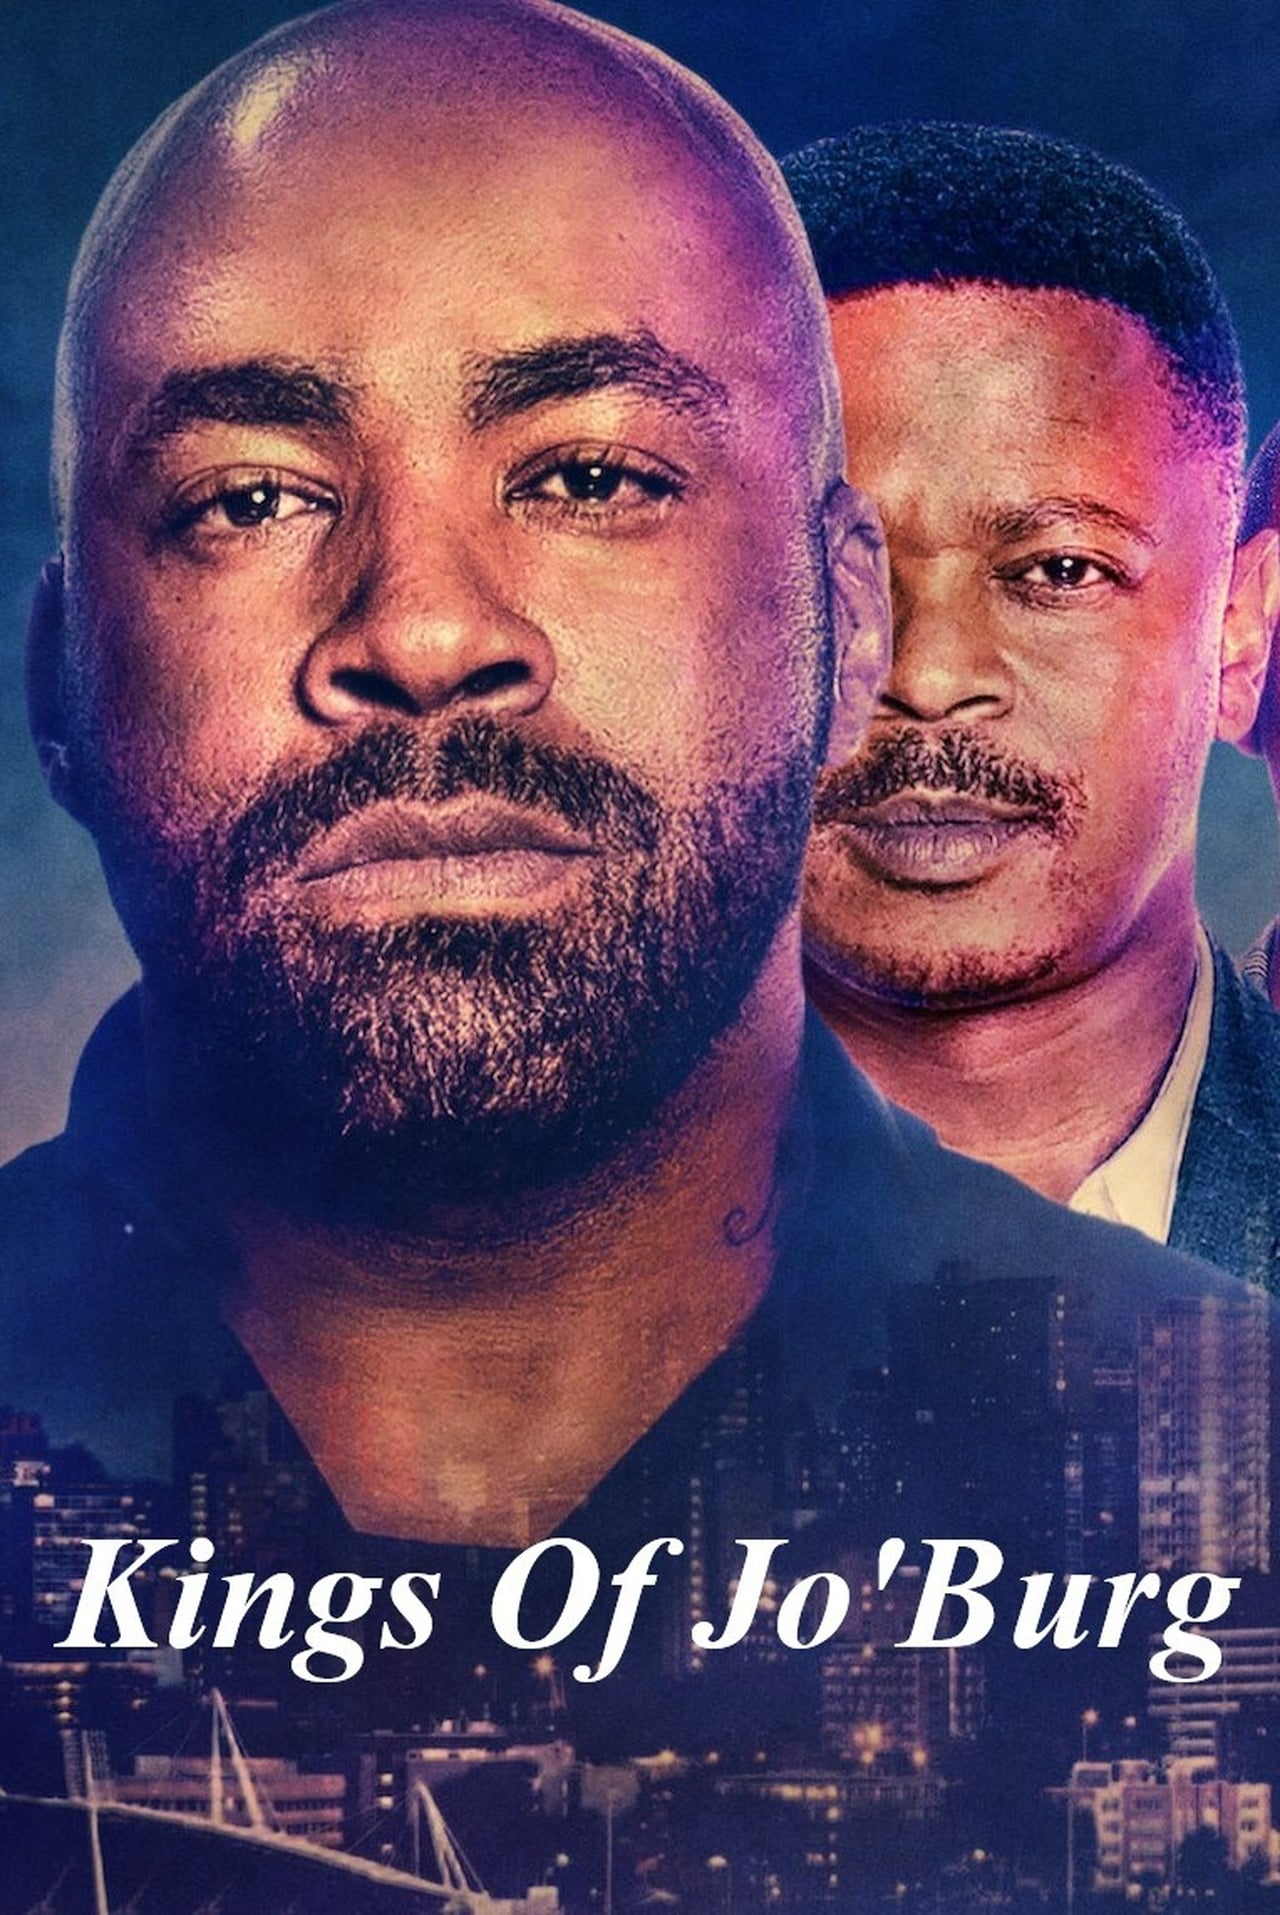 Kings of Jo'Burg (season 1)